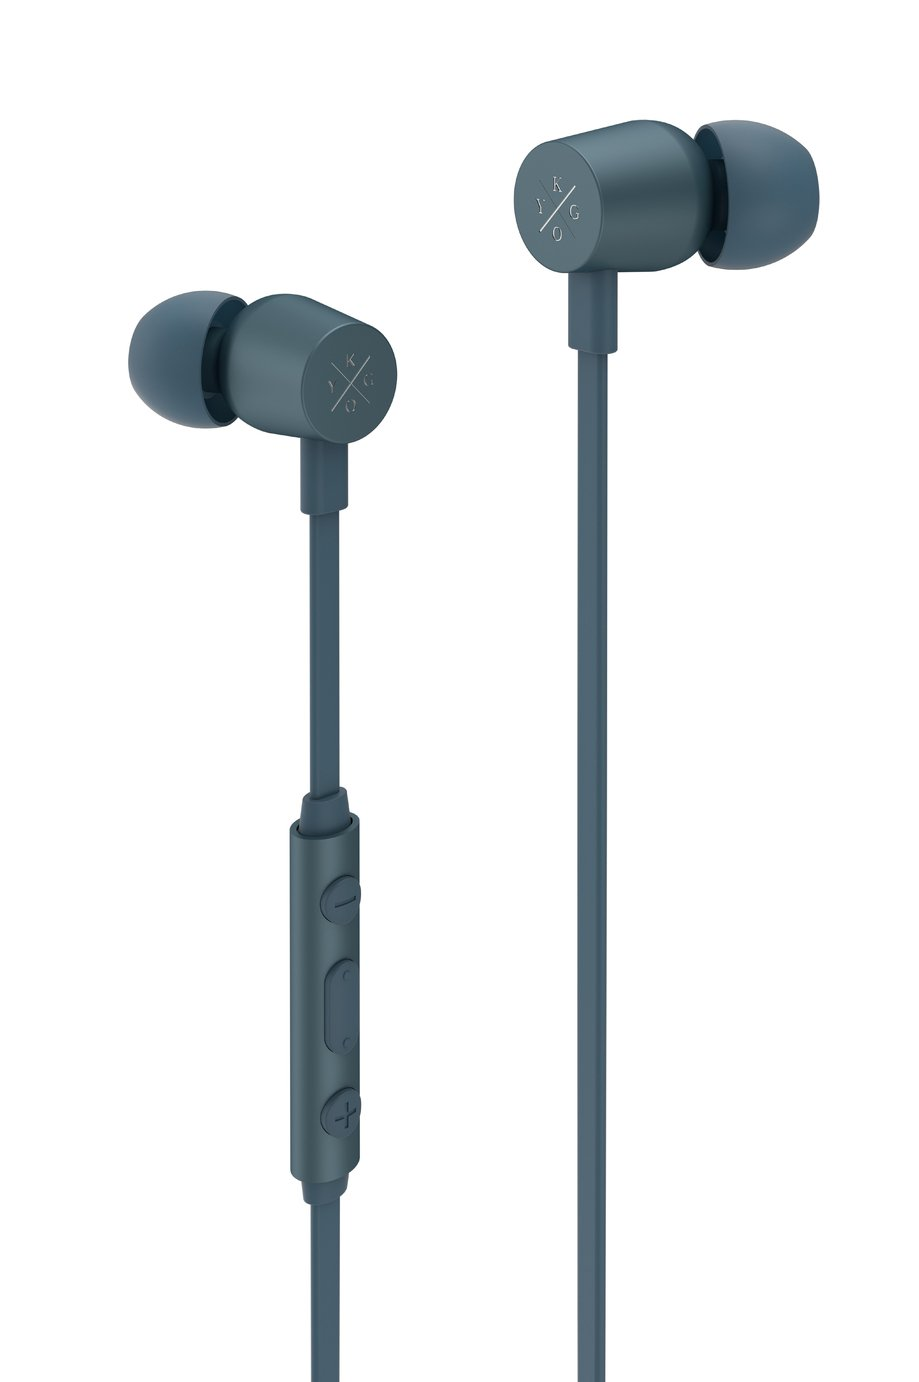 Kygo E2/400 In-Ear Wired Headphones - Teal